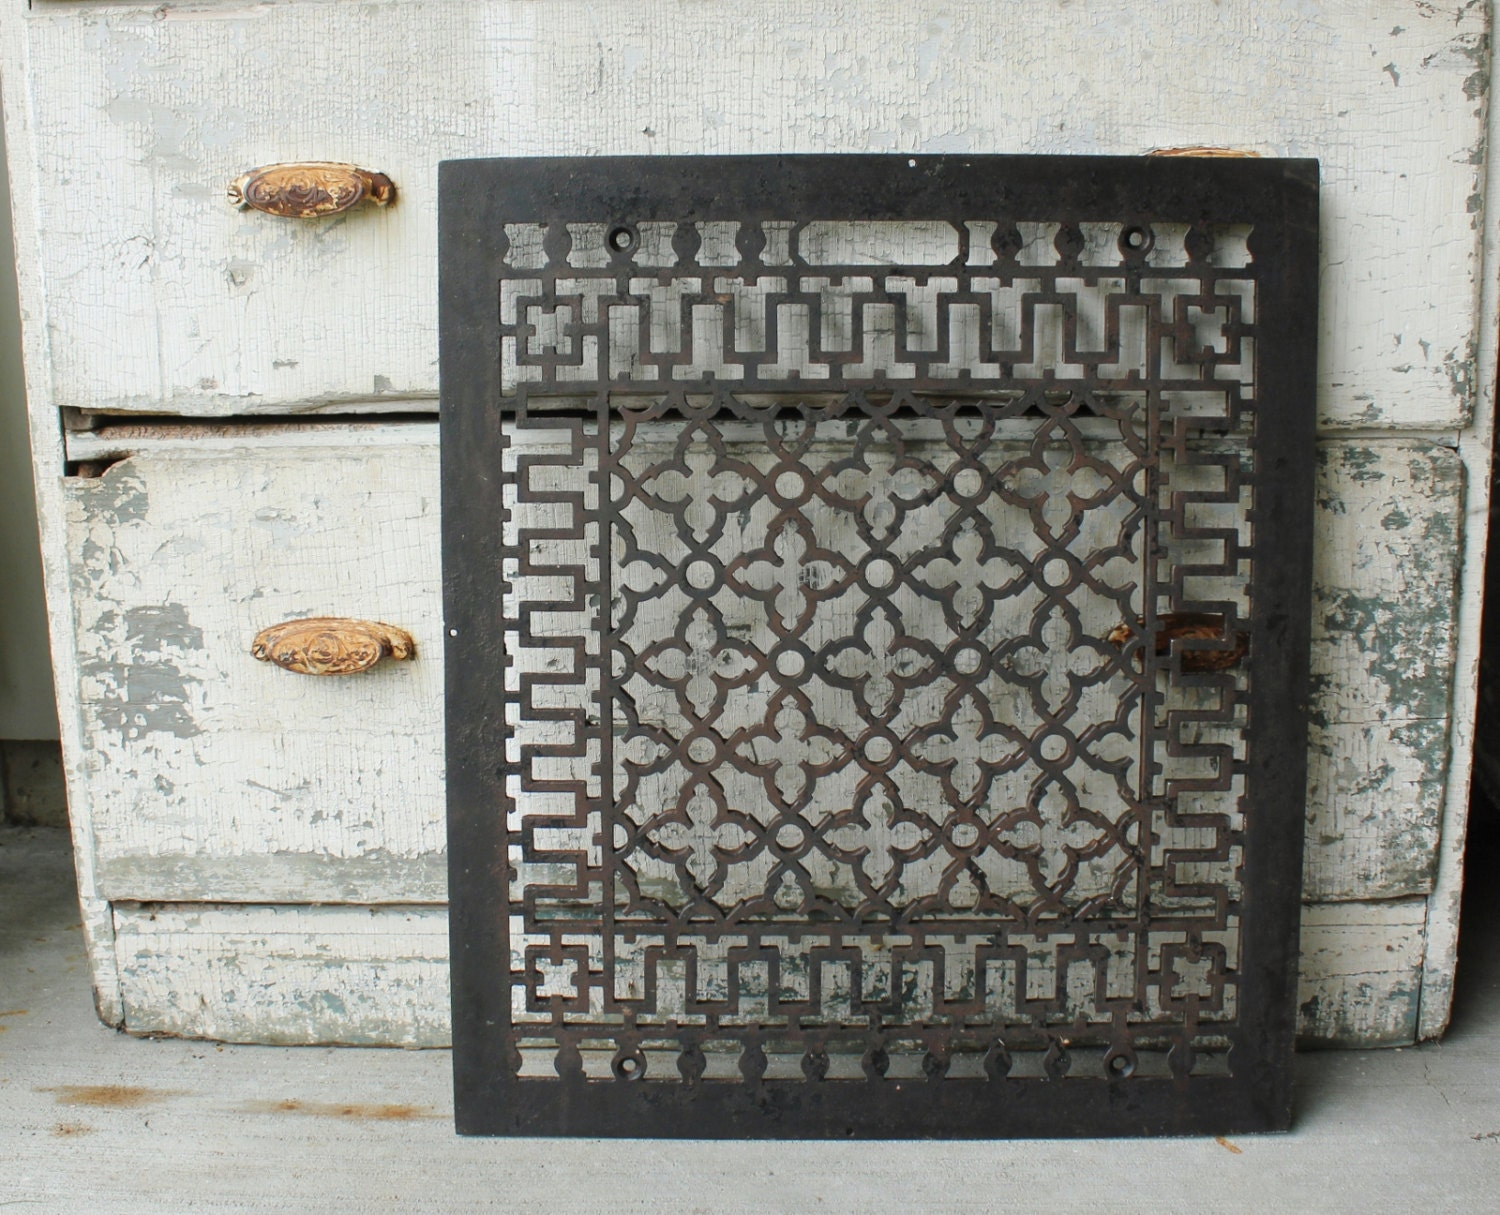 #80684B Large Antique Cast Iron Heat Register Floor Grate Recommended 4867 Large Floor Registers pics with 1500x1215 px on helpvideos.info - Air Conditioners, Air Coolers and more